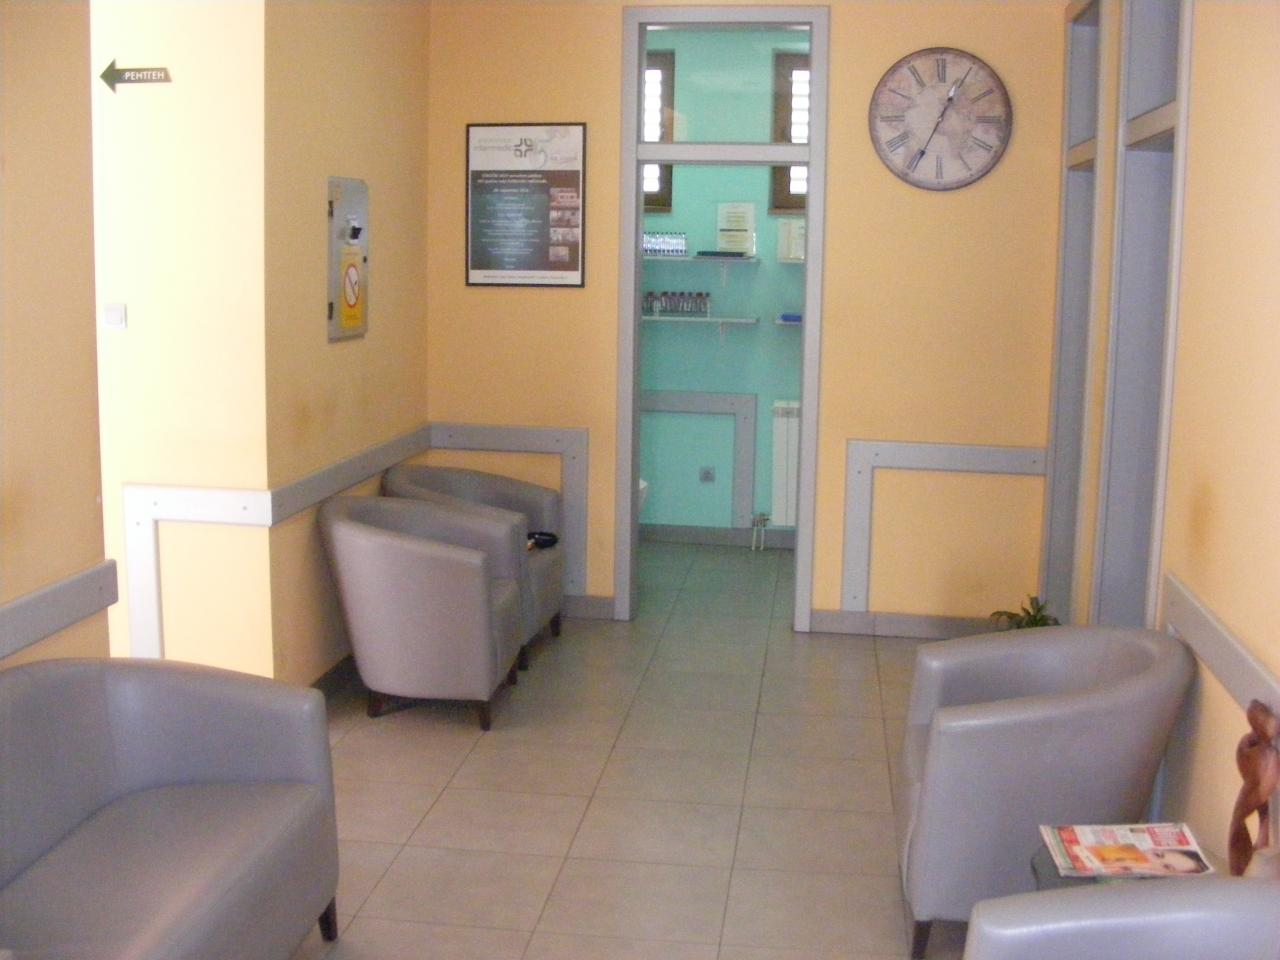 POLIKLINIKA INTERMEDIC Doctors offices Valjevo - Photo 9